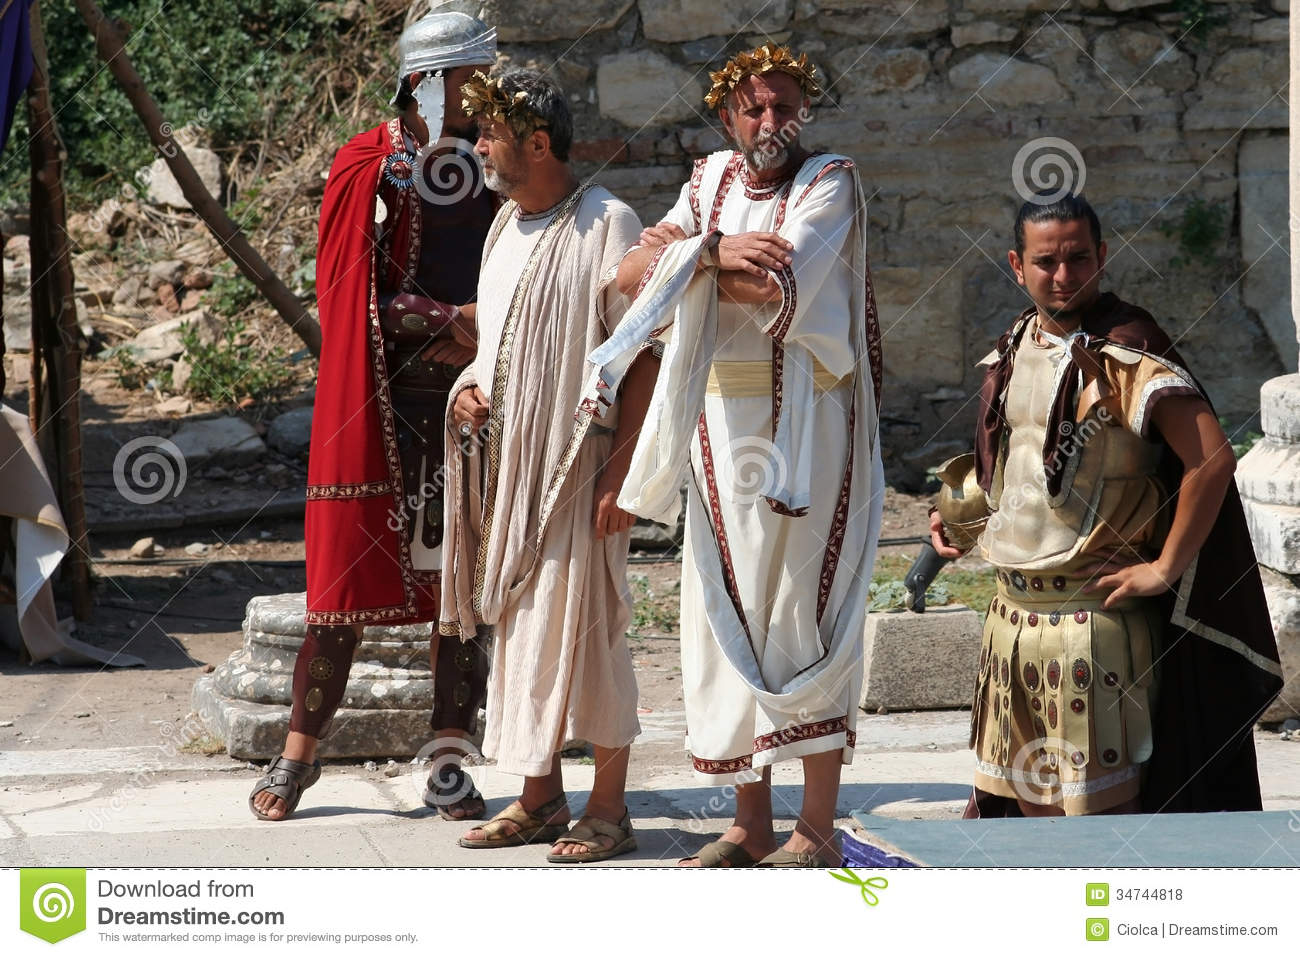 a look at ancient greek theater and performances This means that if it weren't for the ancient greeks, theater as we know it wouldn't exist not only that, but some of the plays that were written back then are still being performed today theater generally evolved from ancient greek religious celebrations, but they eventually morphed into what we know it today here's a look at.